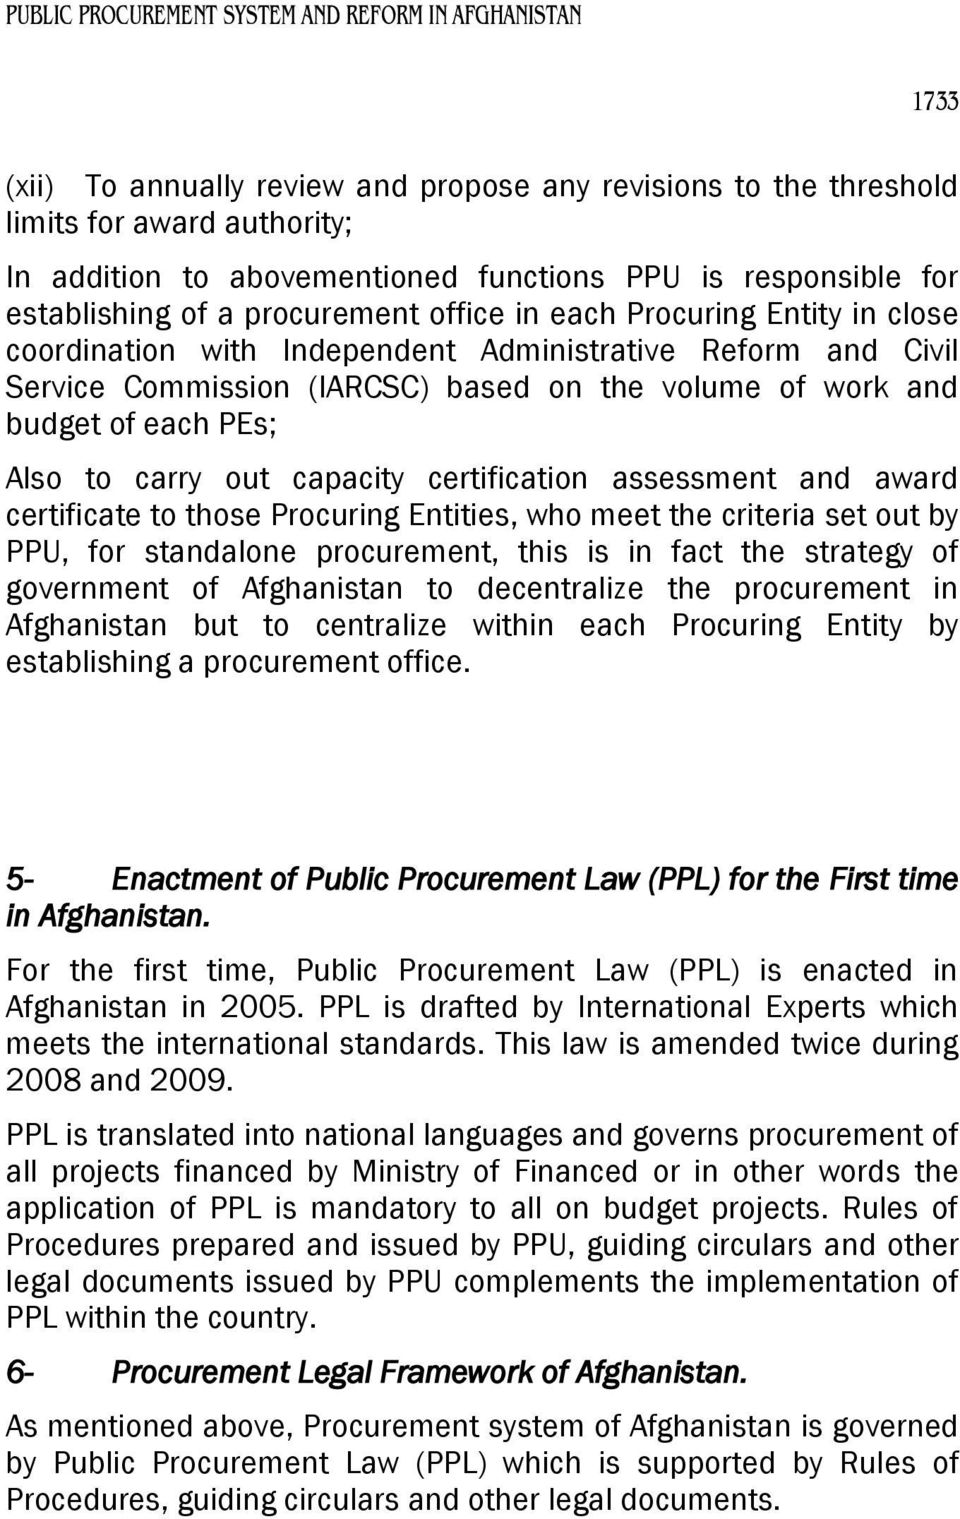 out capacity certification assessment and award certificate to those Procuring Entities, who meet the criteria set out by PPU, for standalone procurement, this is in fact the strategy of government